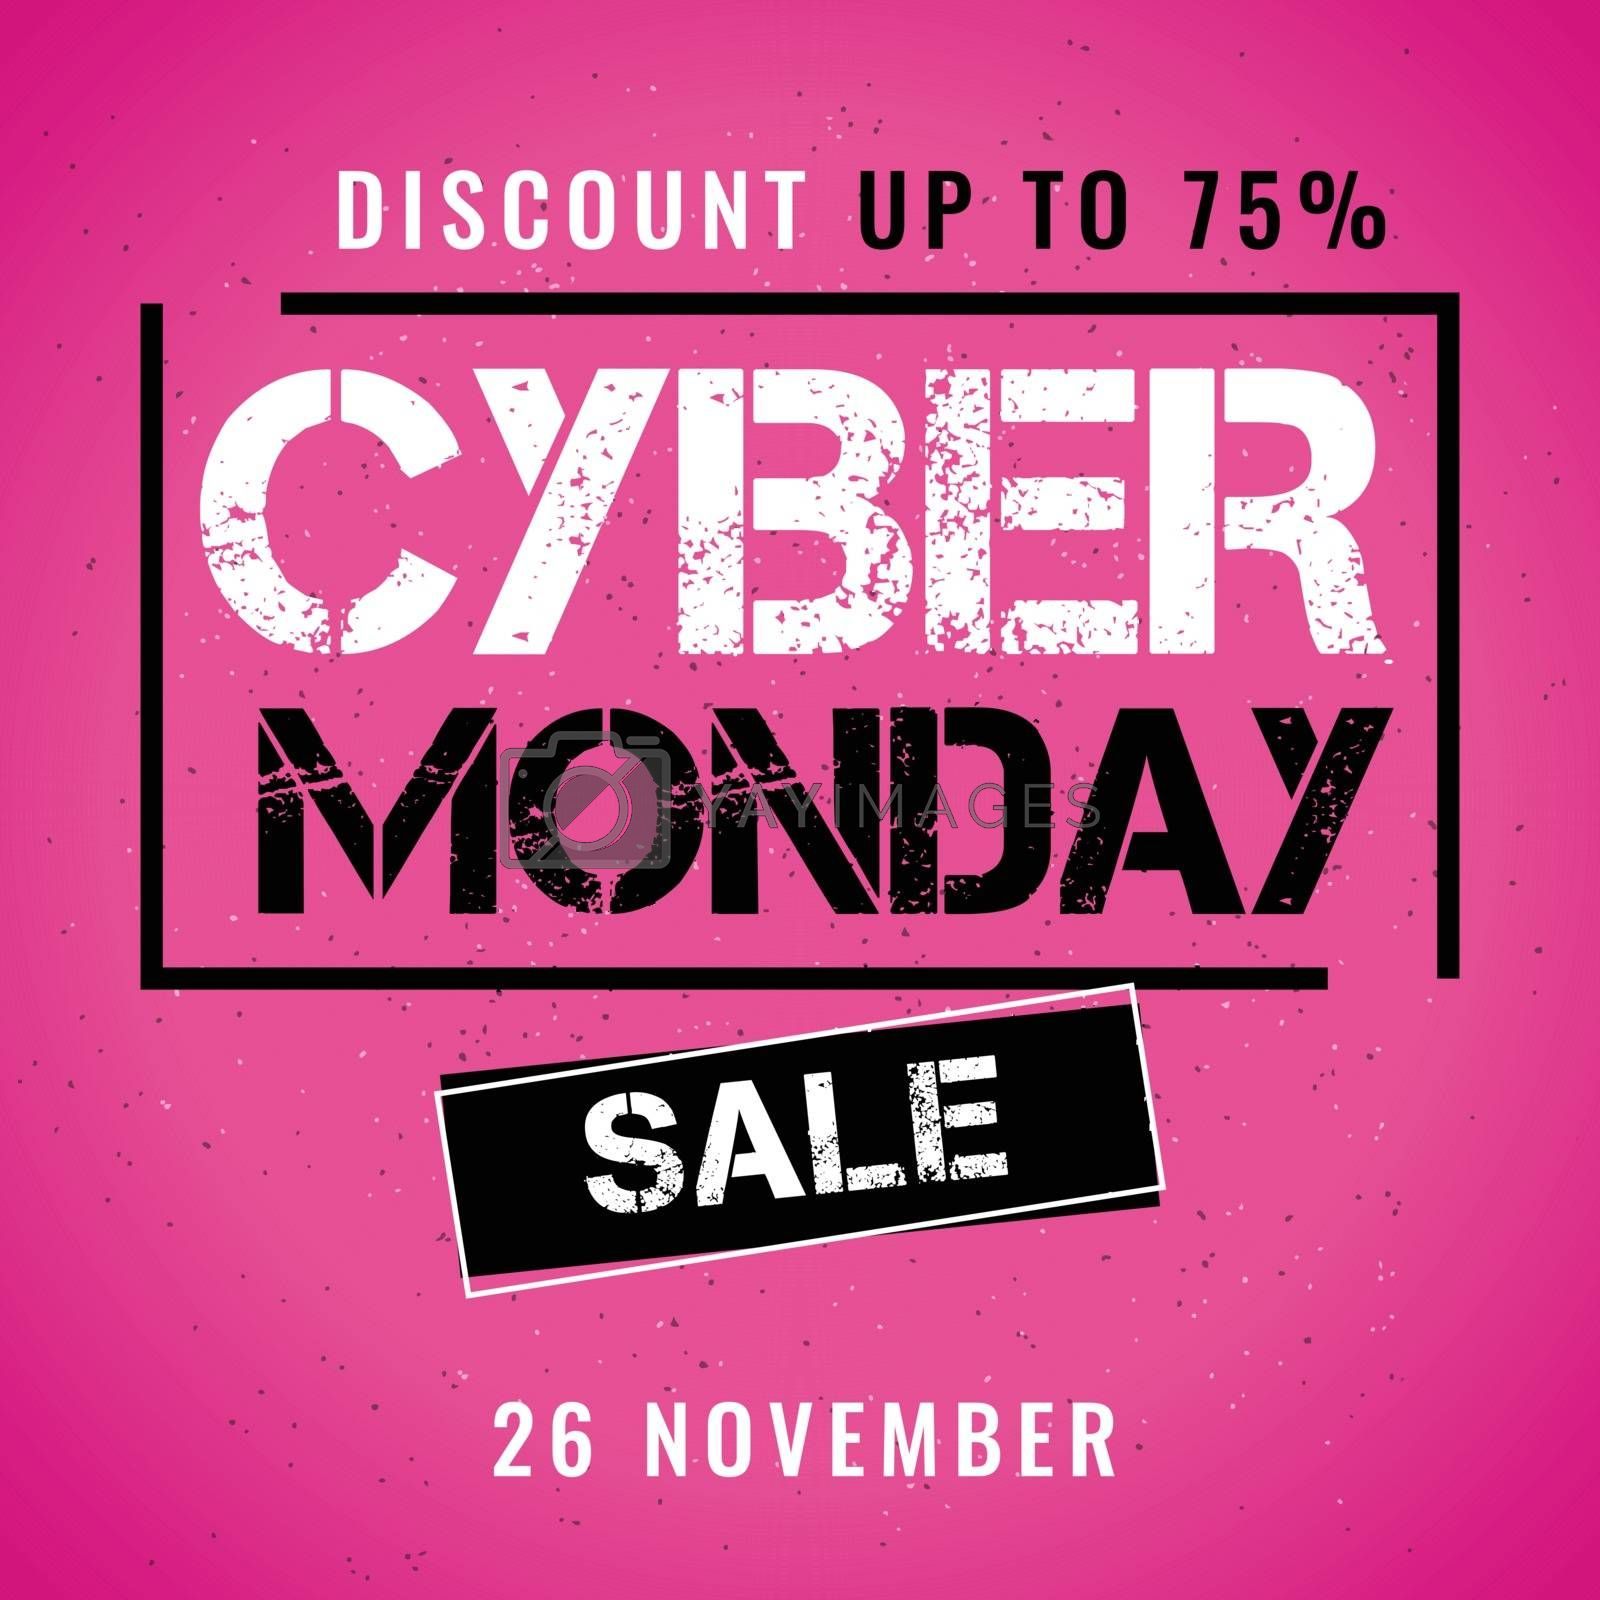 Cyber Monday Sale banner or poster design with 75% Discount offe by aispl